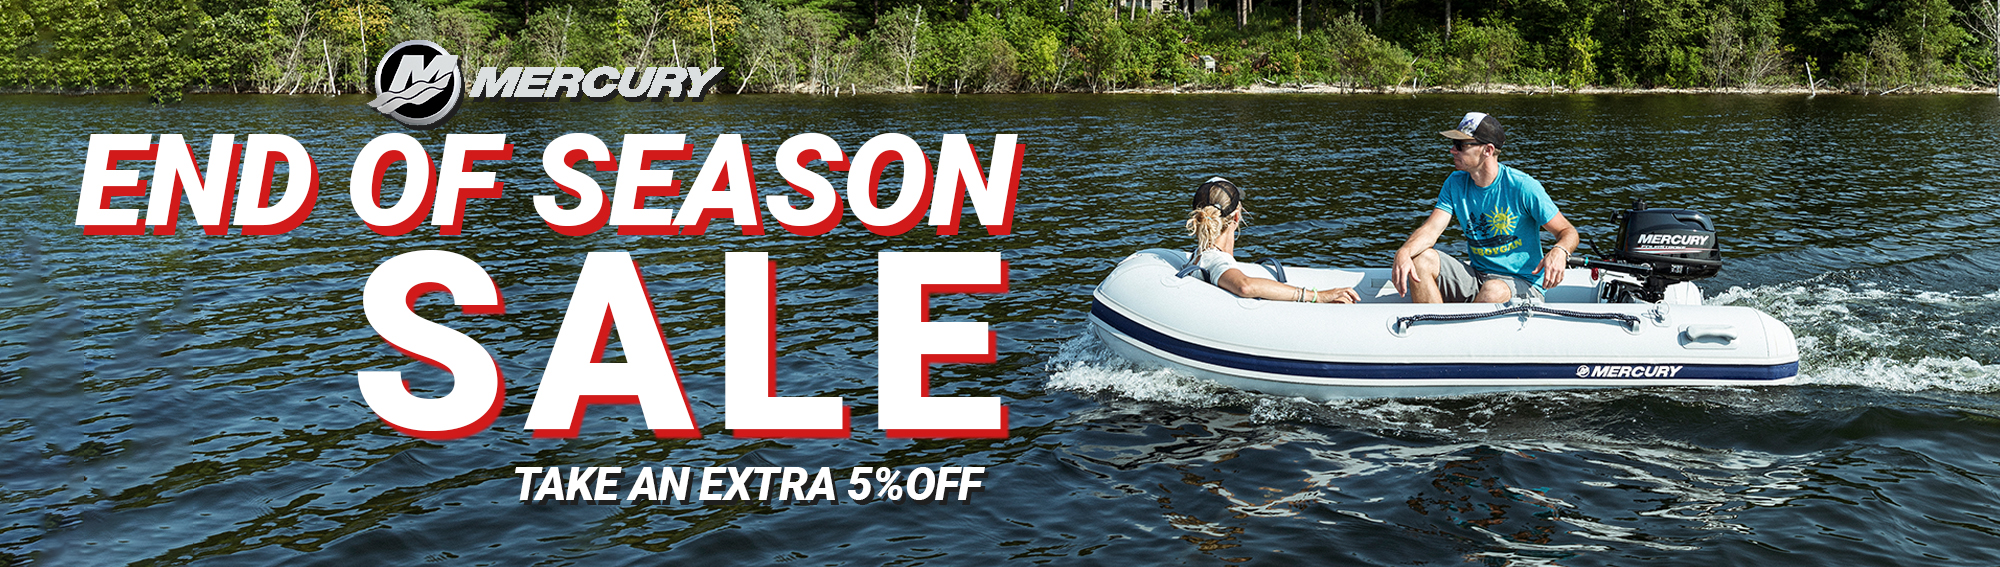 Mercury inflatable boats at deep discounts! You can expect the same quality and performance with Mercury inflatable boats that our customers have come to rely on with their exceptional line of outboards.